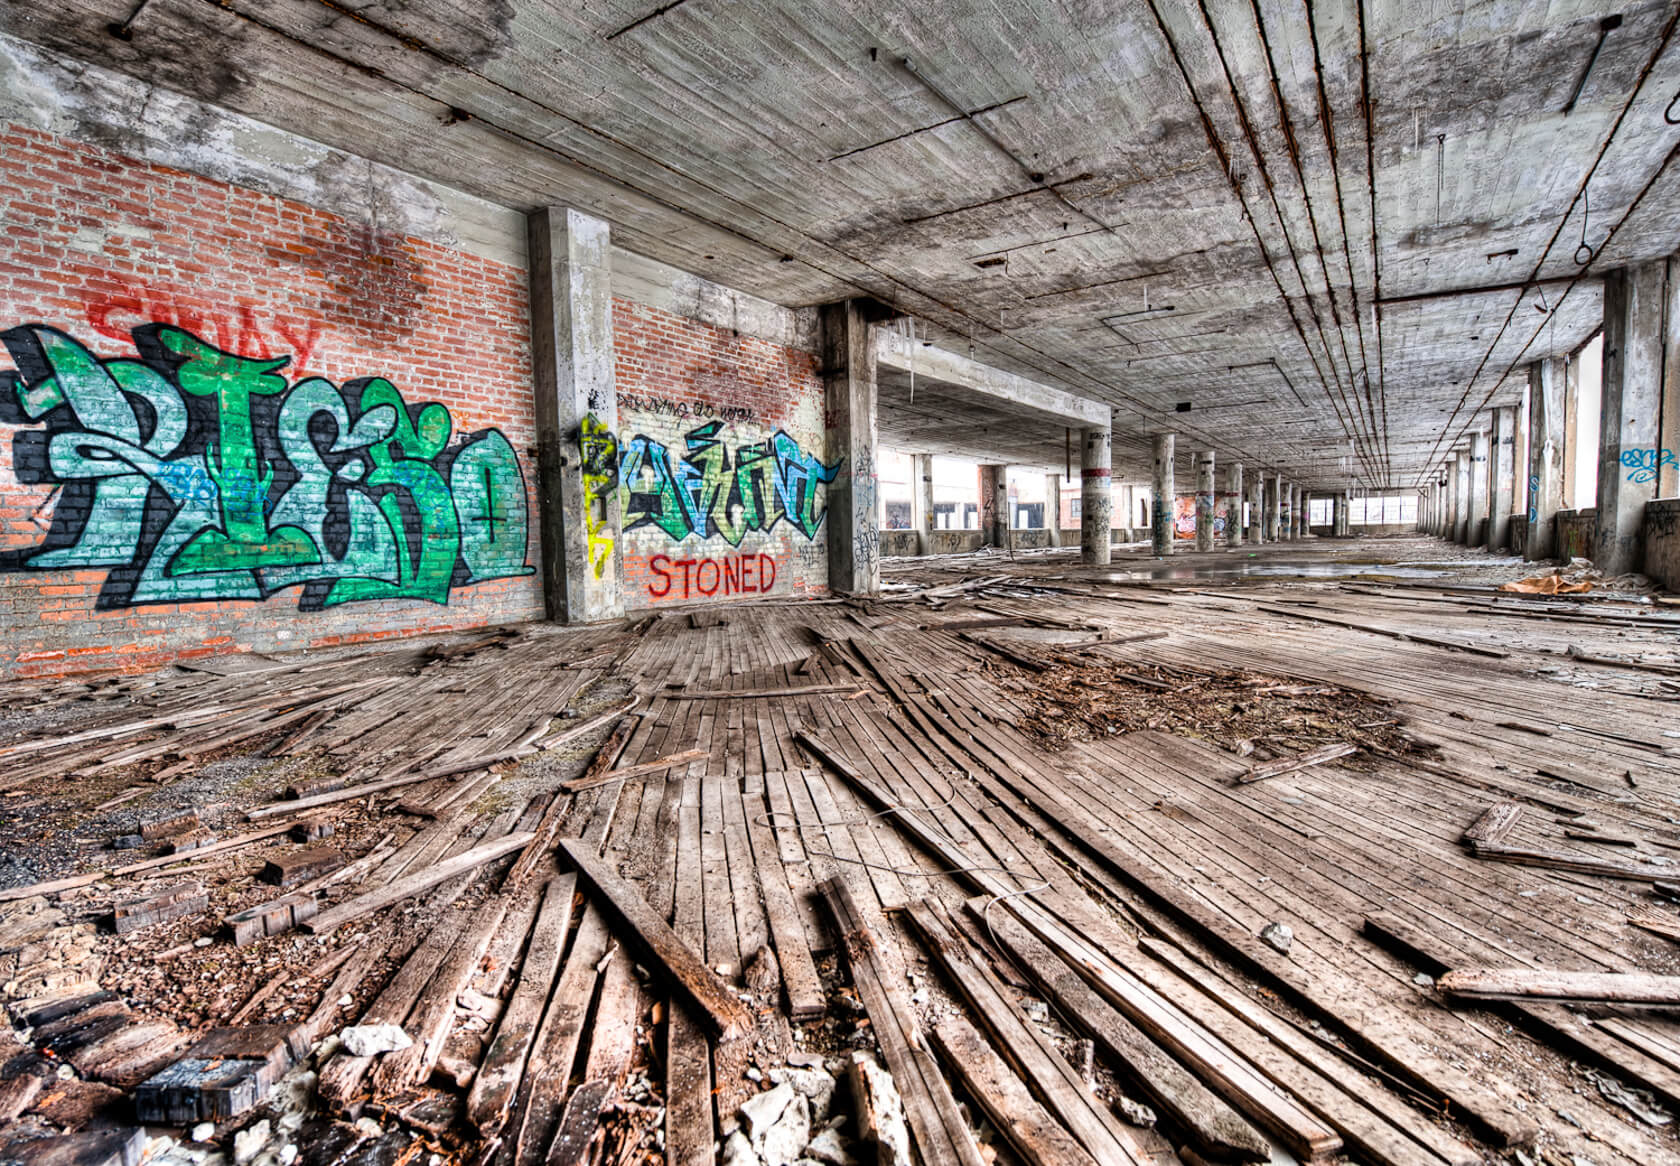 Photographing Abandoned Buildings Has Become Increasingly Popular Over The Last Decade As Urban Exploration Has Carved A Niche For Itself In The